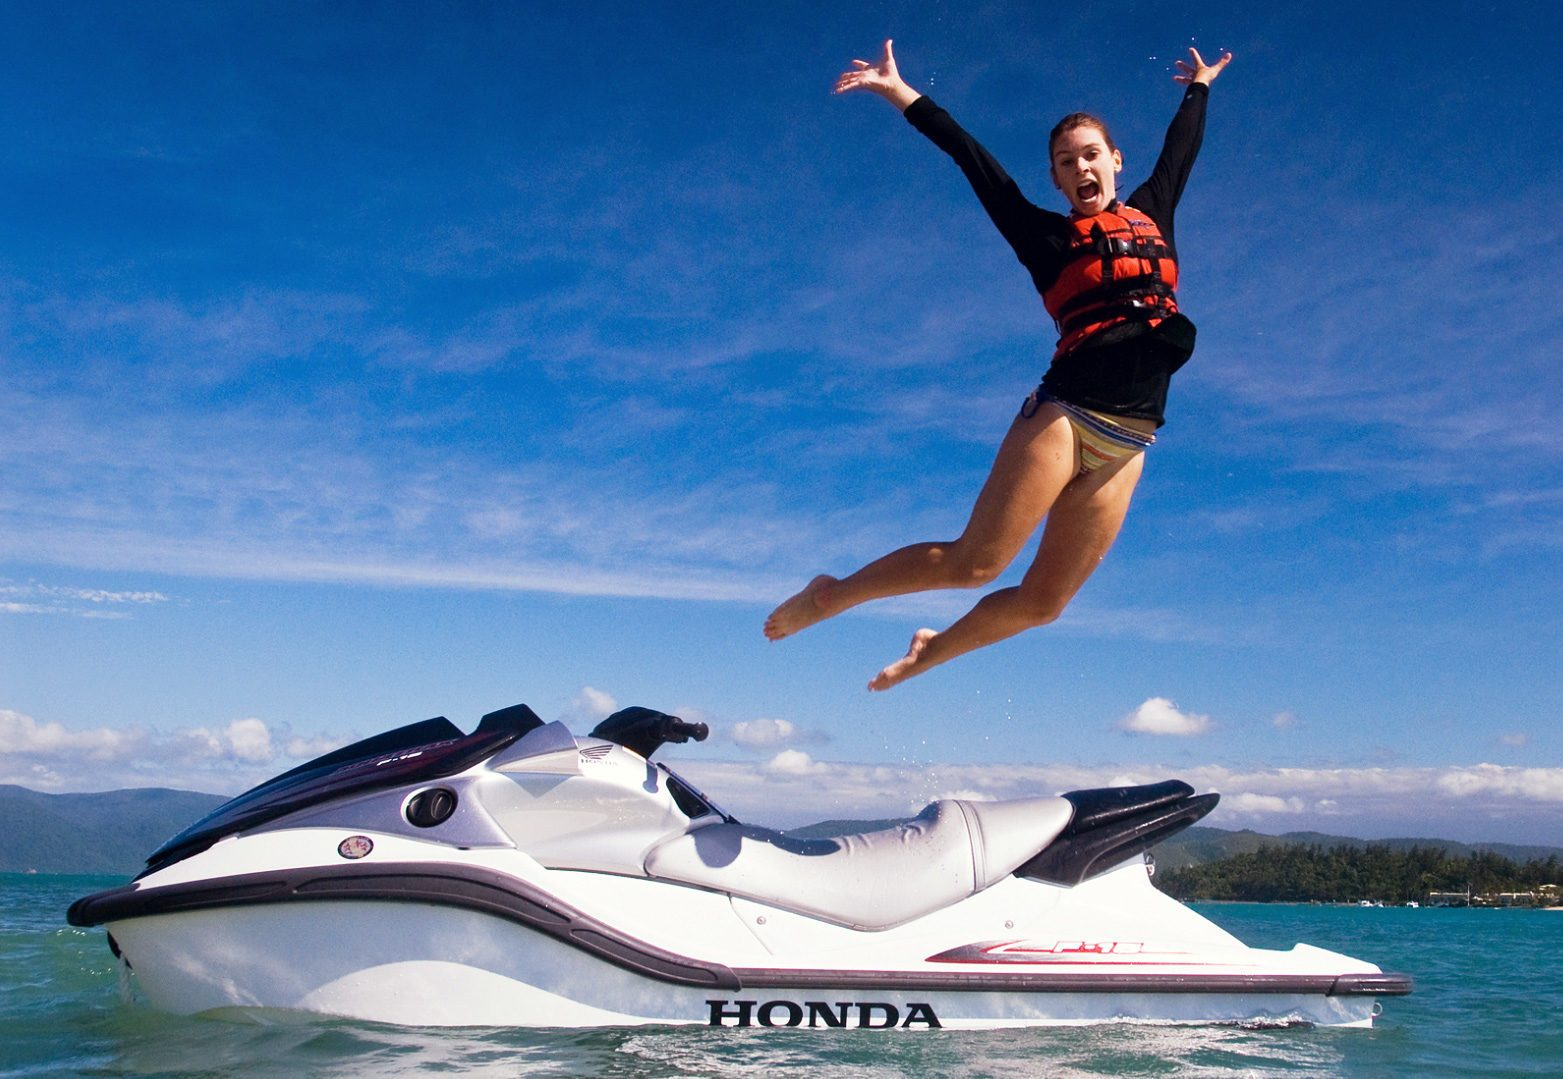 Jet-Skiing-HD-Wallpapers-6-e1494930715930